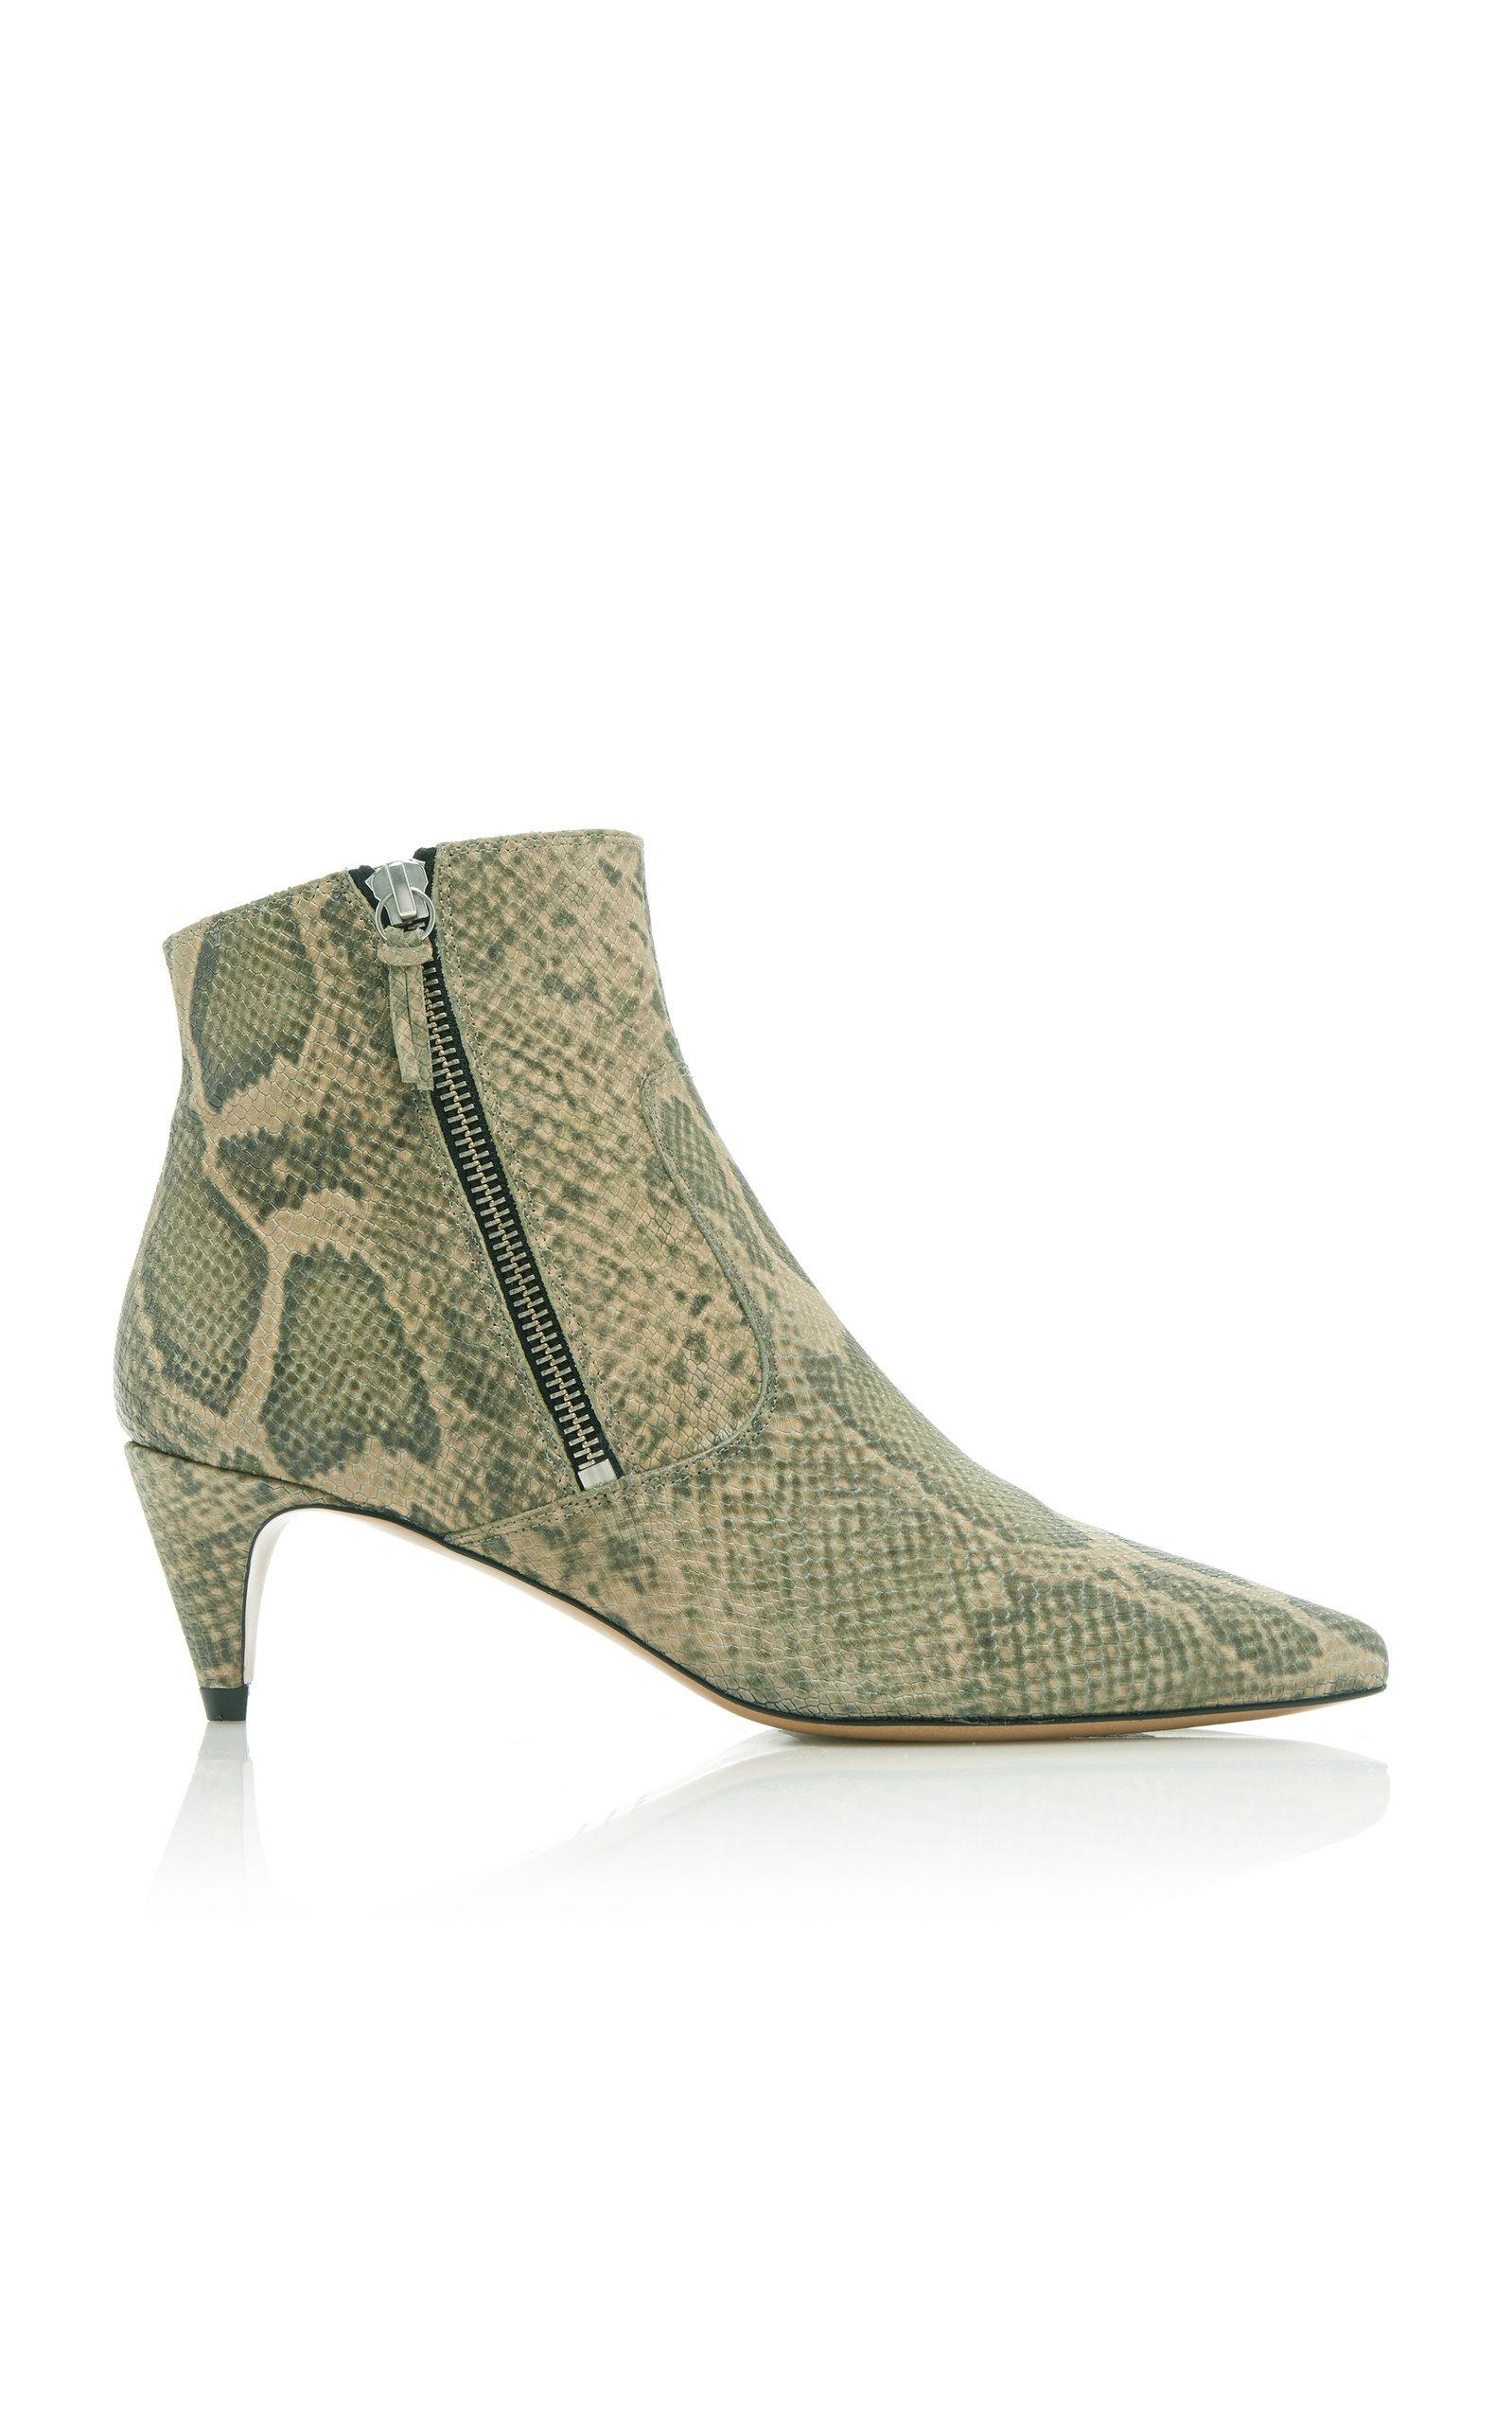 Isabel Marant Deby Snake-Effect Leather Ankle Boots In Python